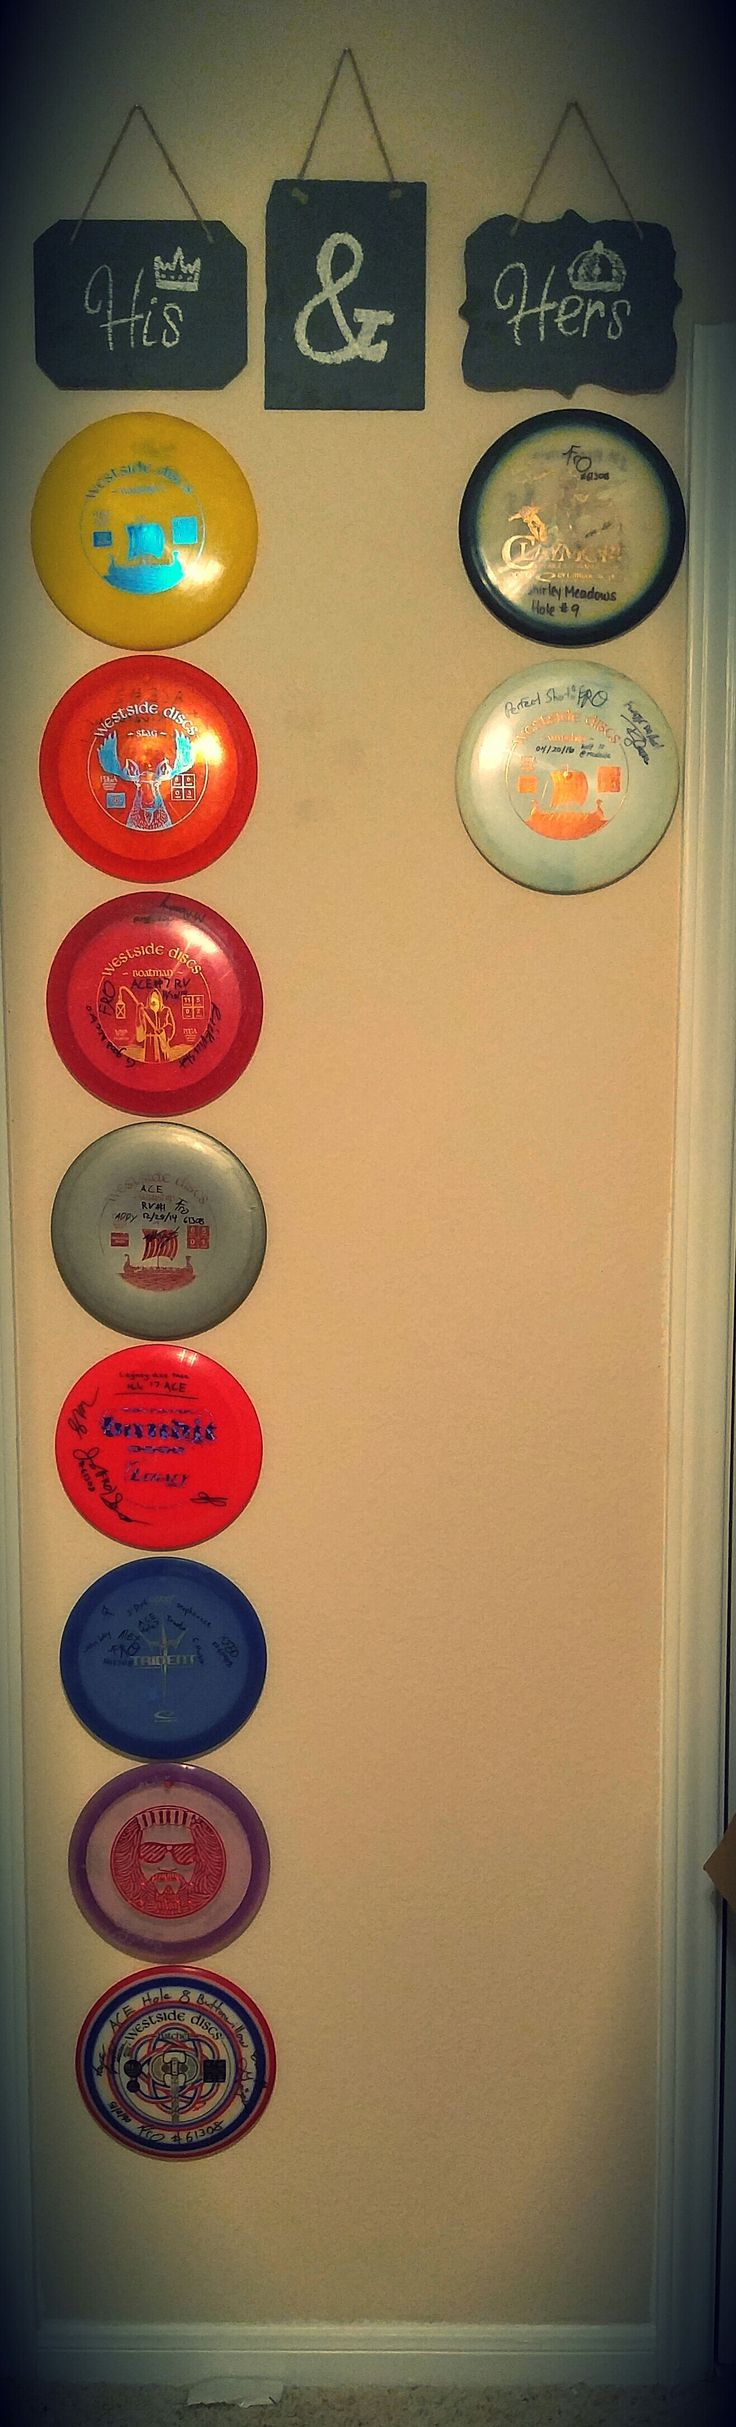 #relationshipgoals his and hers disc golf ace wall.  you can even put pictures of you two down the middle to make it extra special